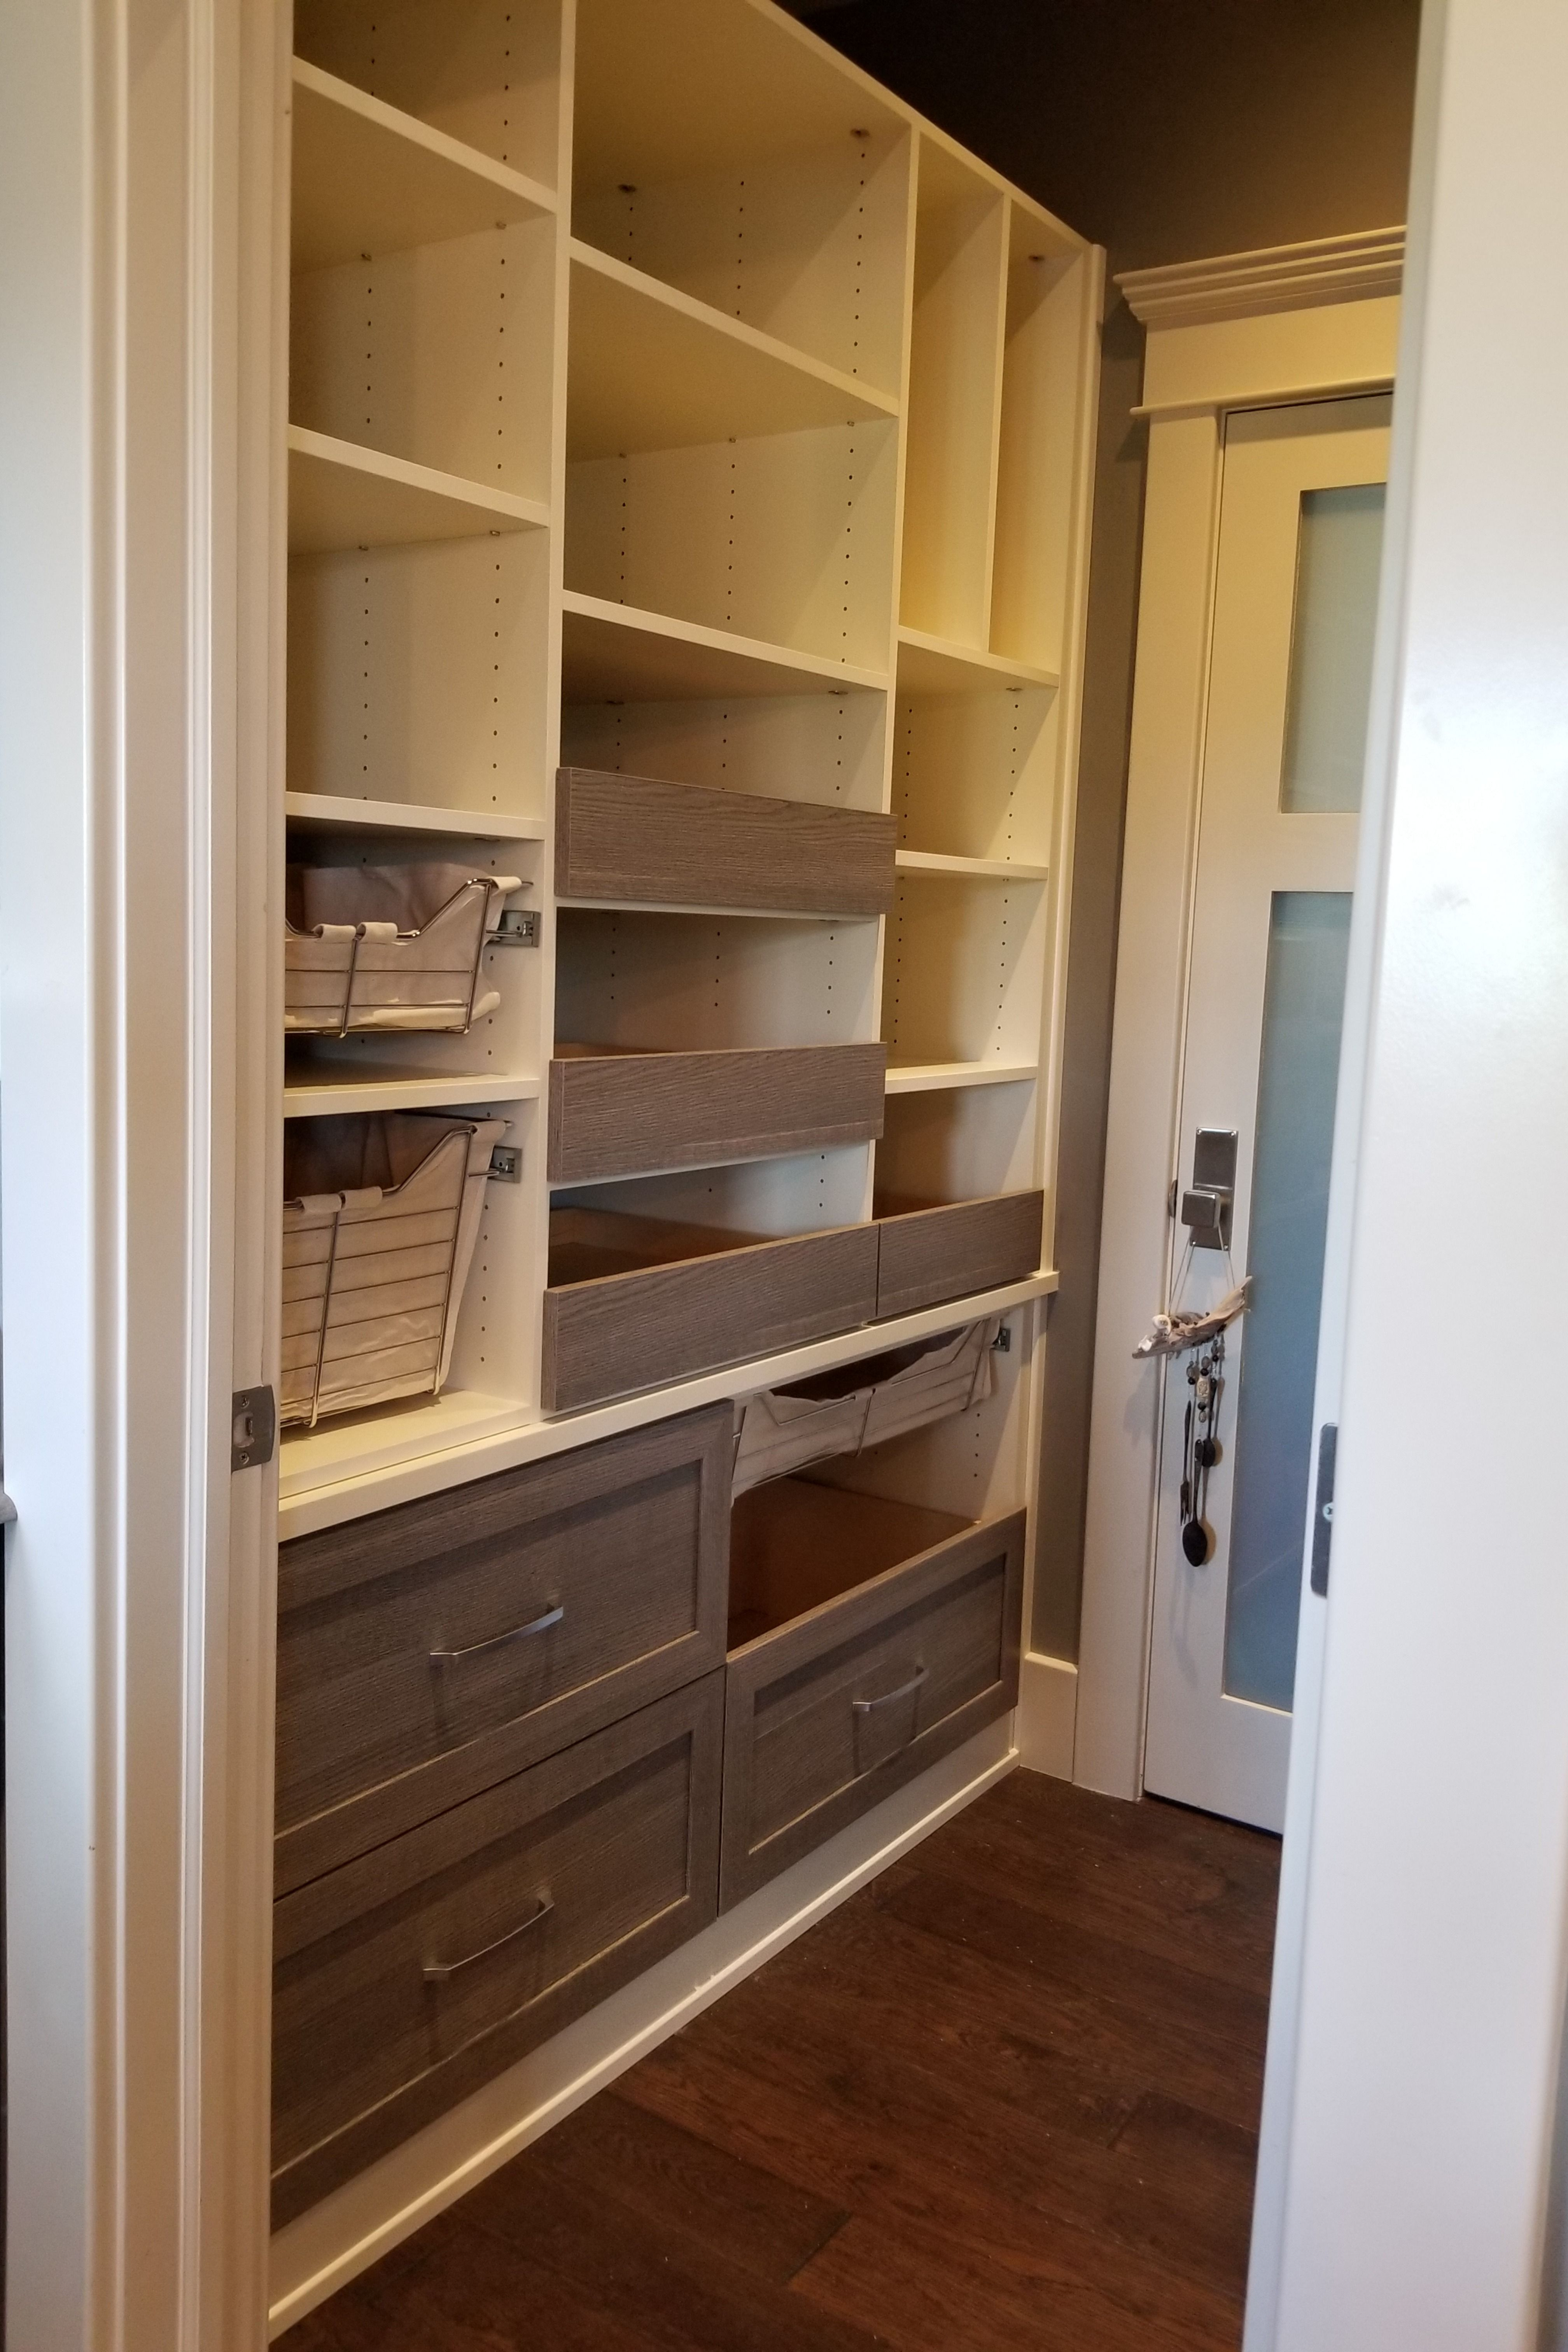 Pin on Pantry Goals